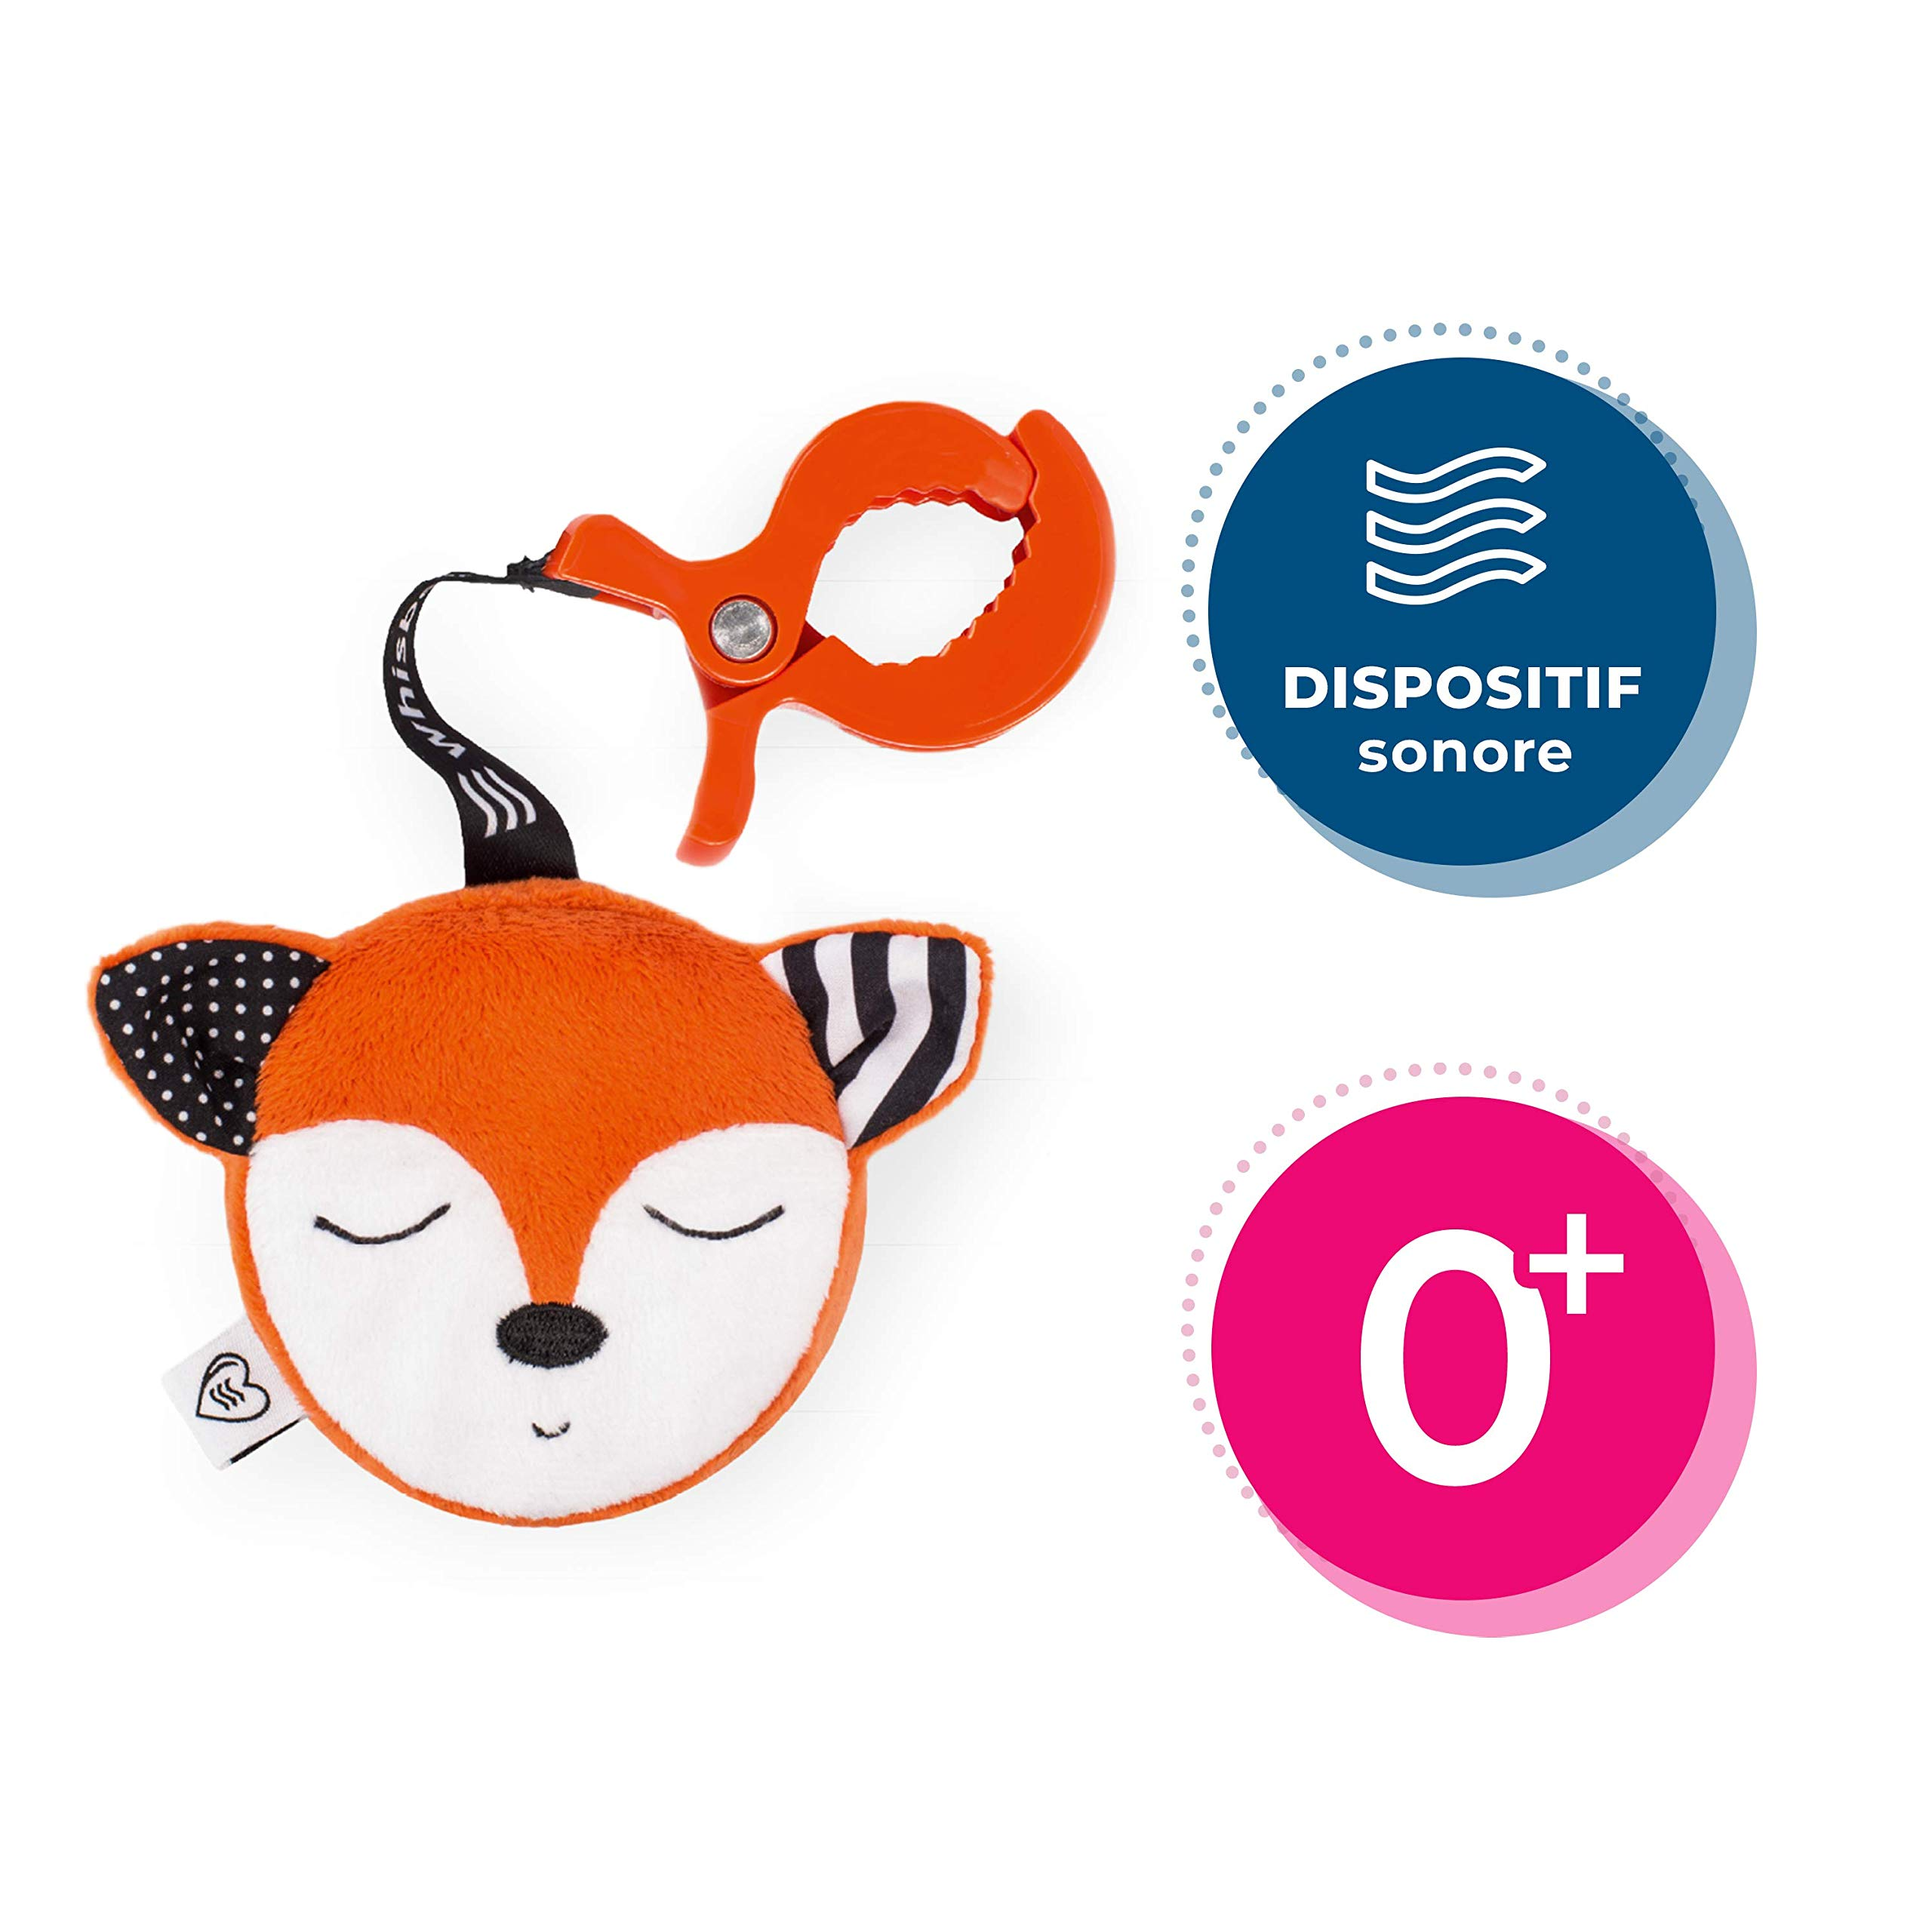 Whisbear The Soothing Fox On-The-go Humming Device- Easily Attachable Sleep Soother, Helps Babies Fall Asleep with a Calming Pink Noise, Washable, Suitable for Newborns